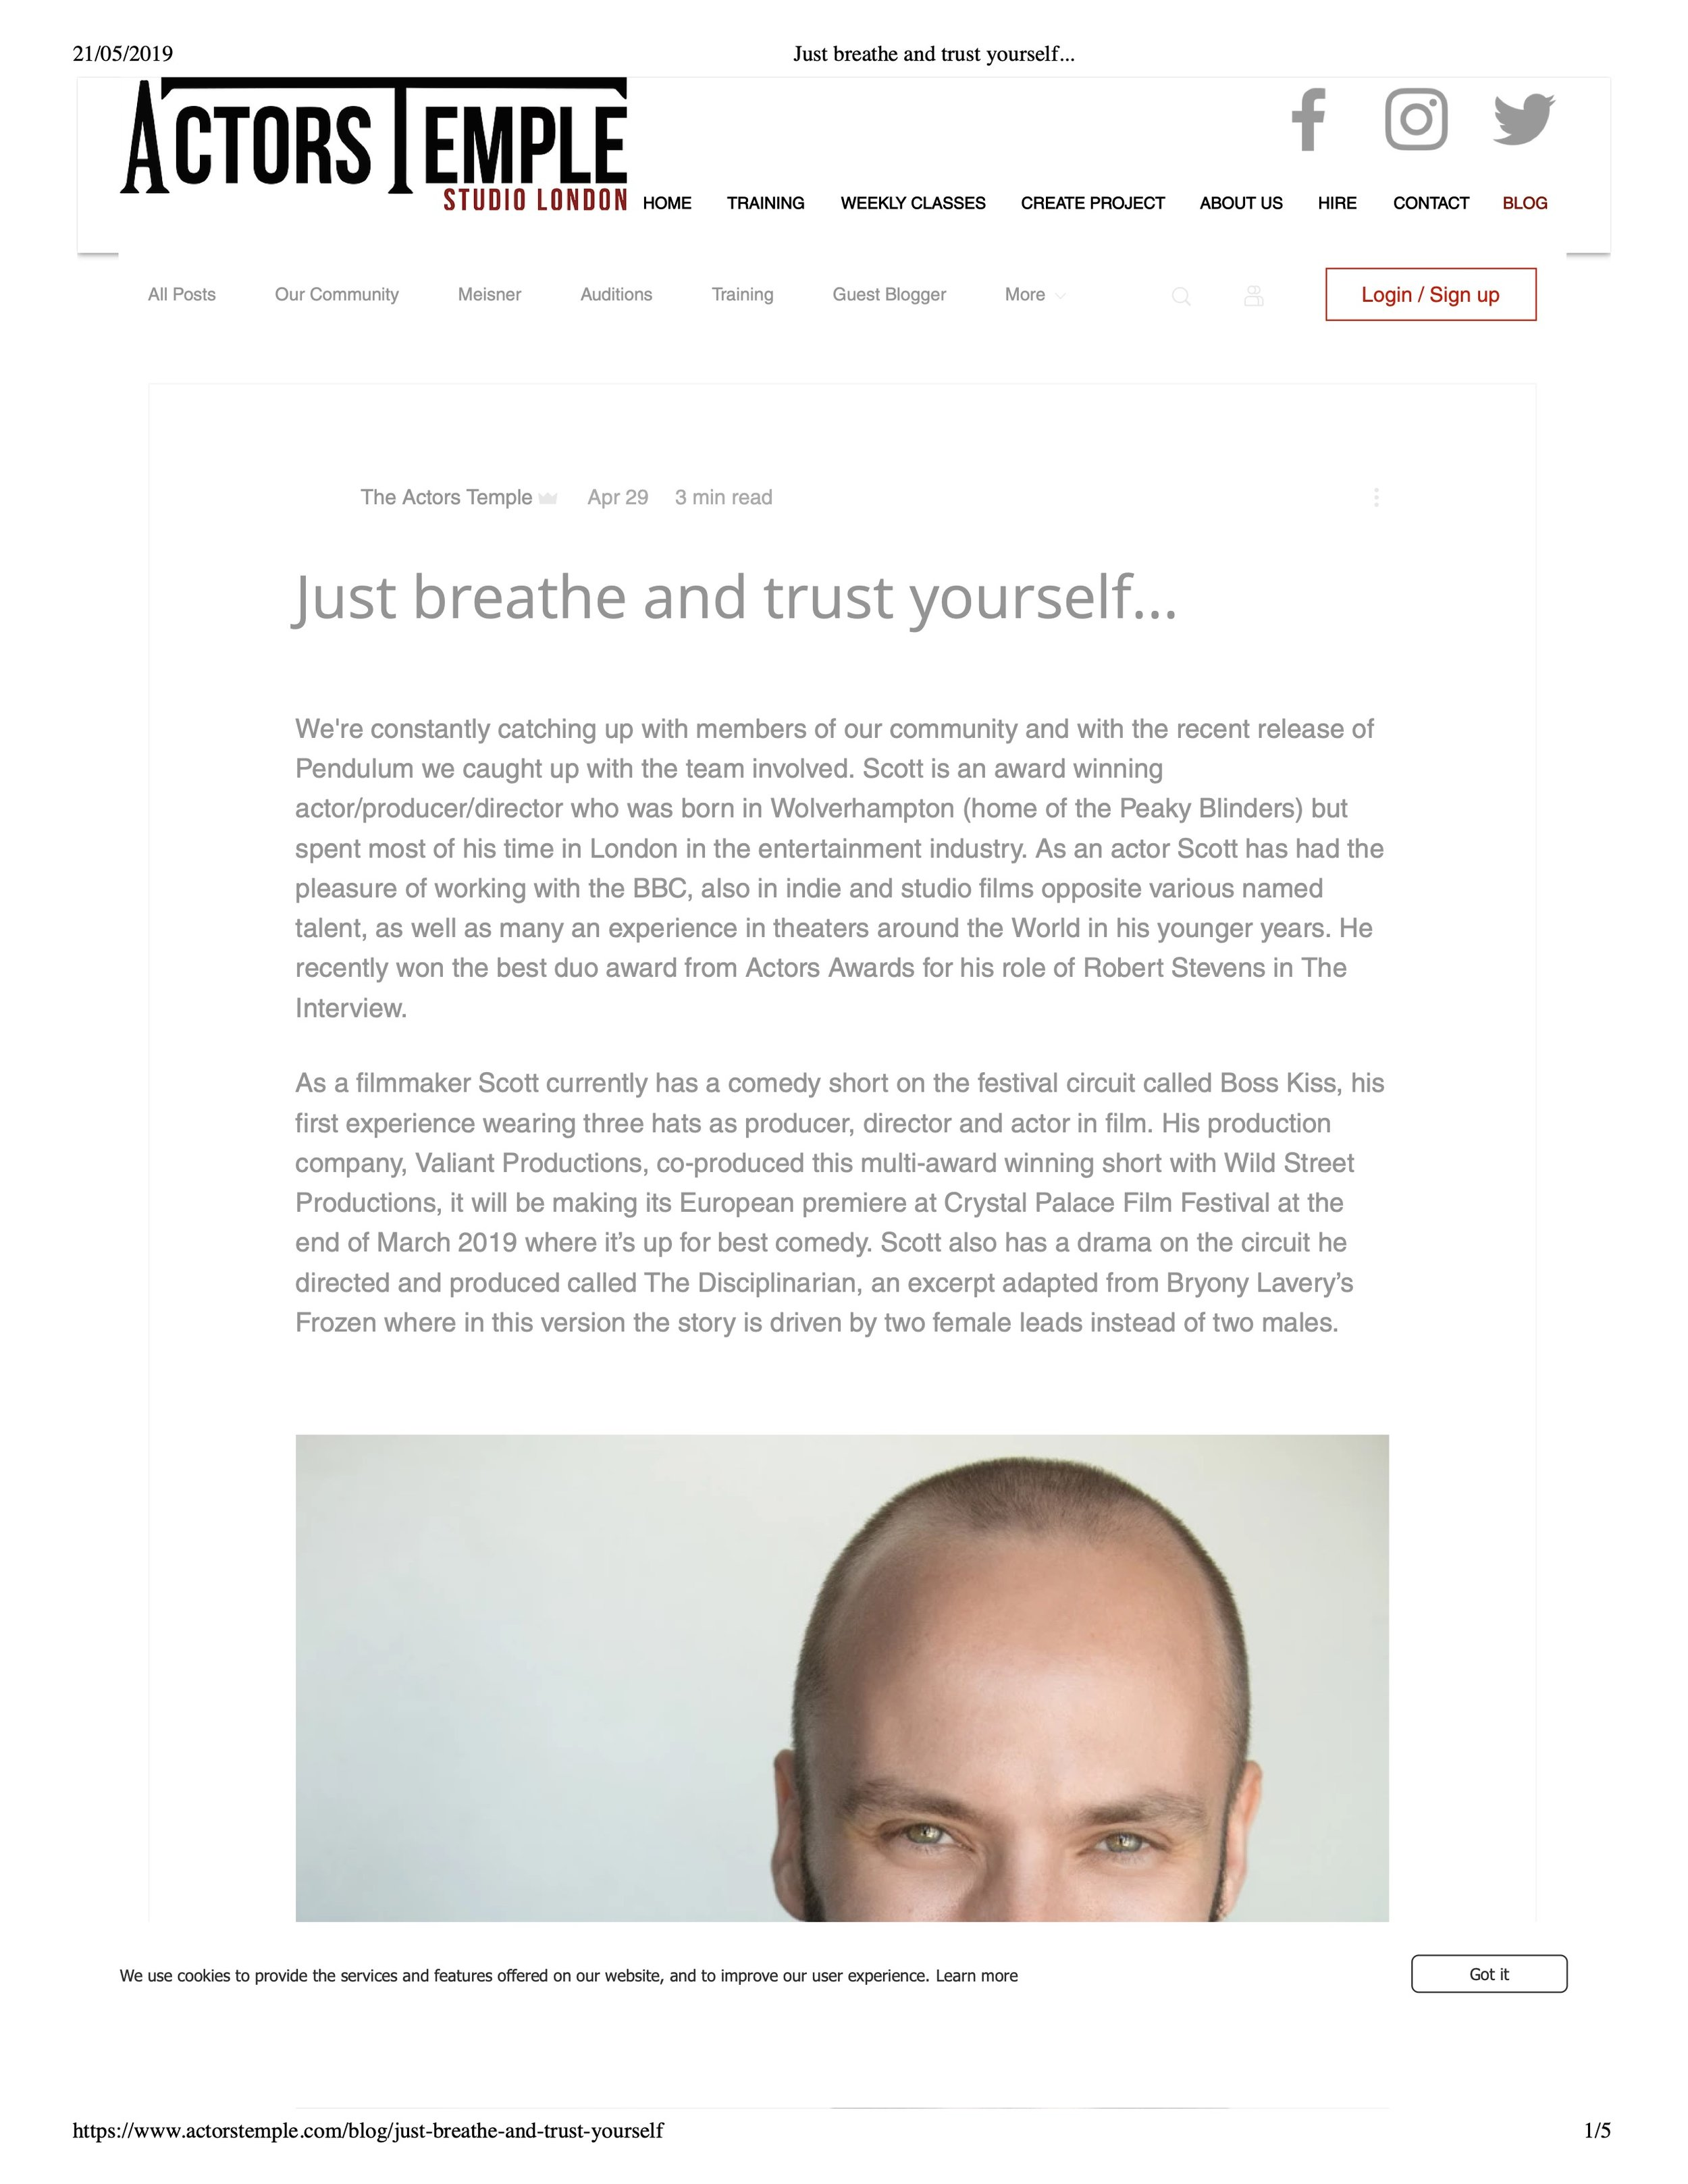 Just breathe and trust yourself... 11-1.jpeg